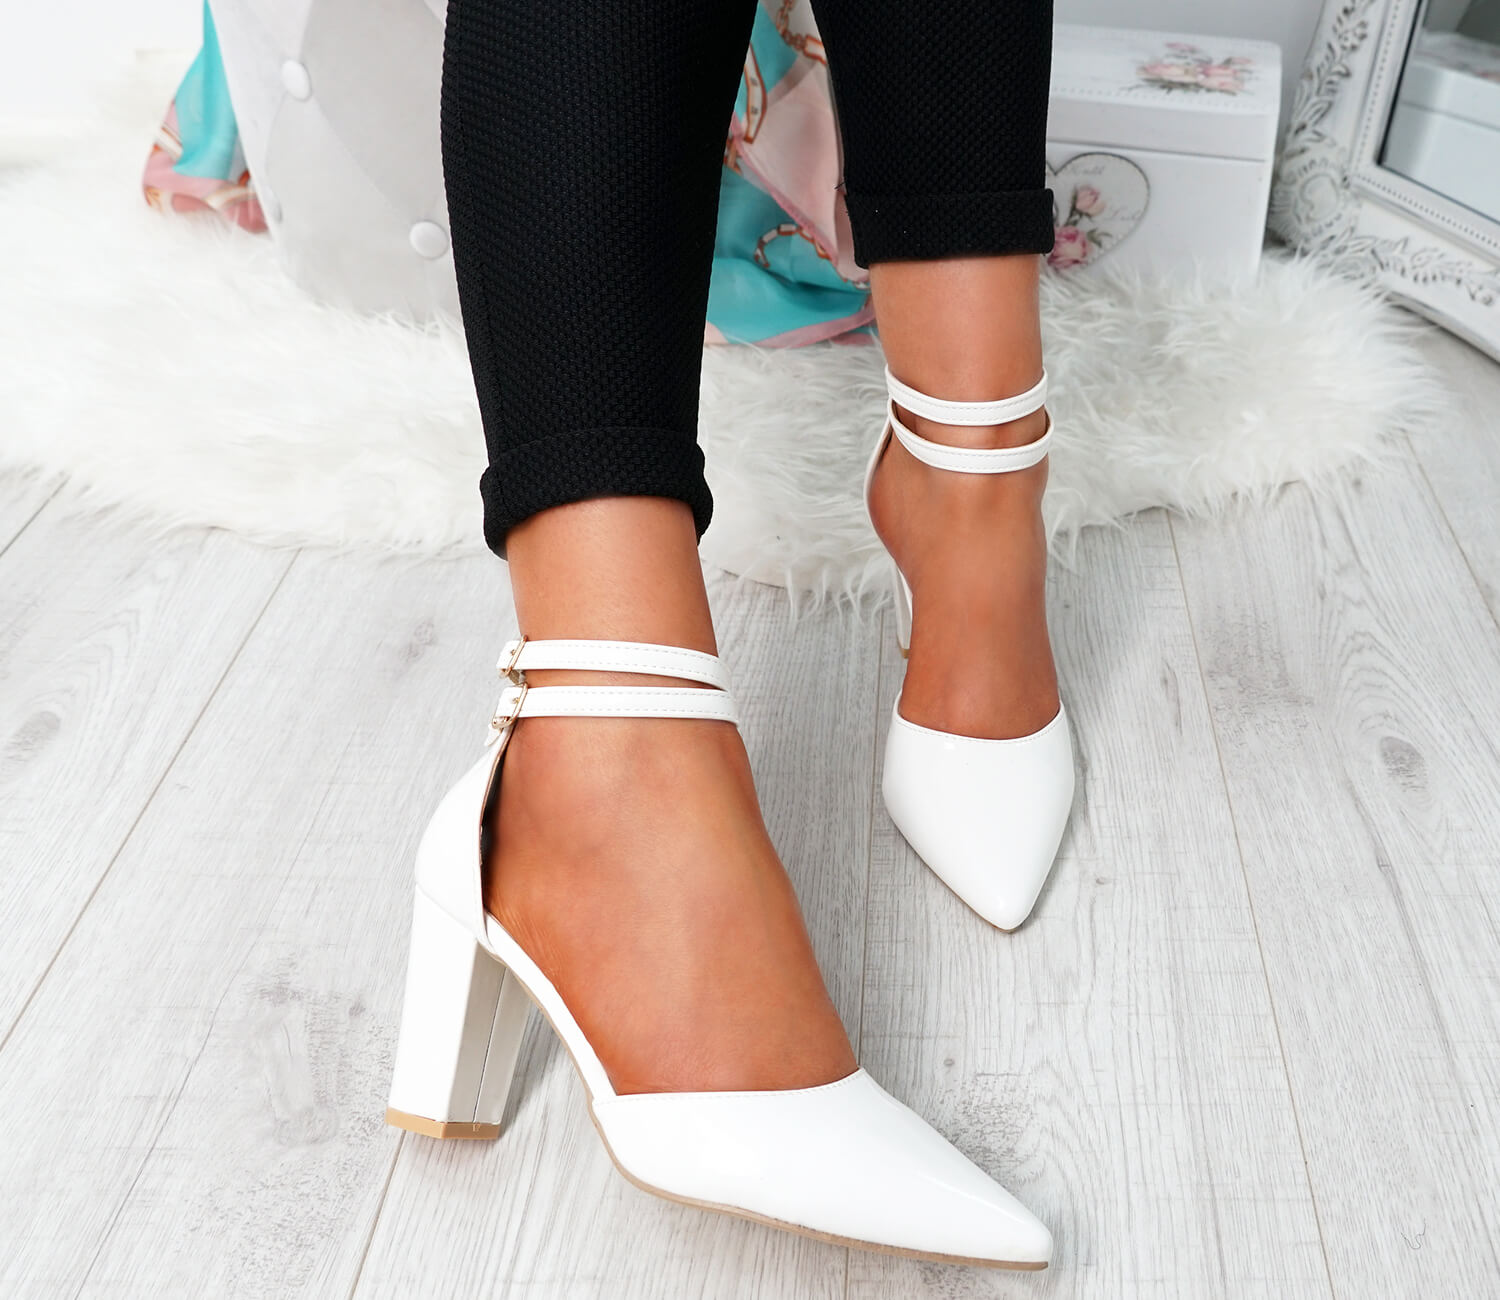 WOMENS-LADIES-ANKLE-DOUBLE-STRAP-HIGH-BLOCK-HEEL-POINTED-TOE-PARTY-SHOES-SIZE thumbnail 17